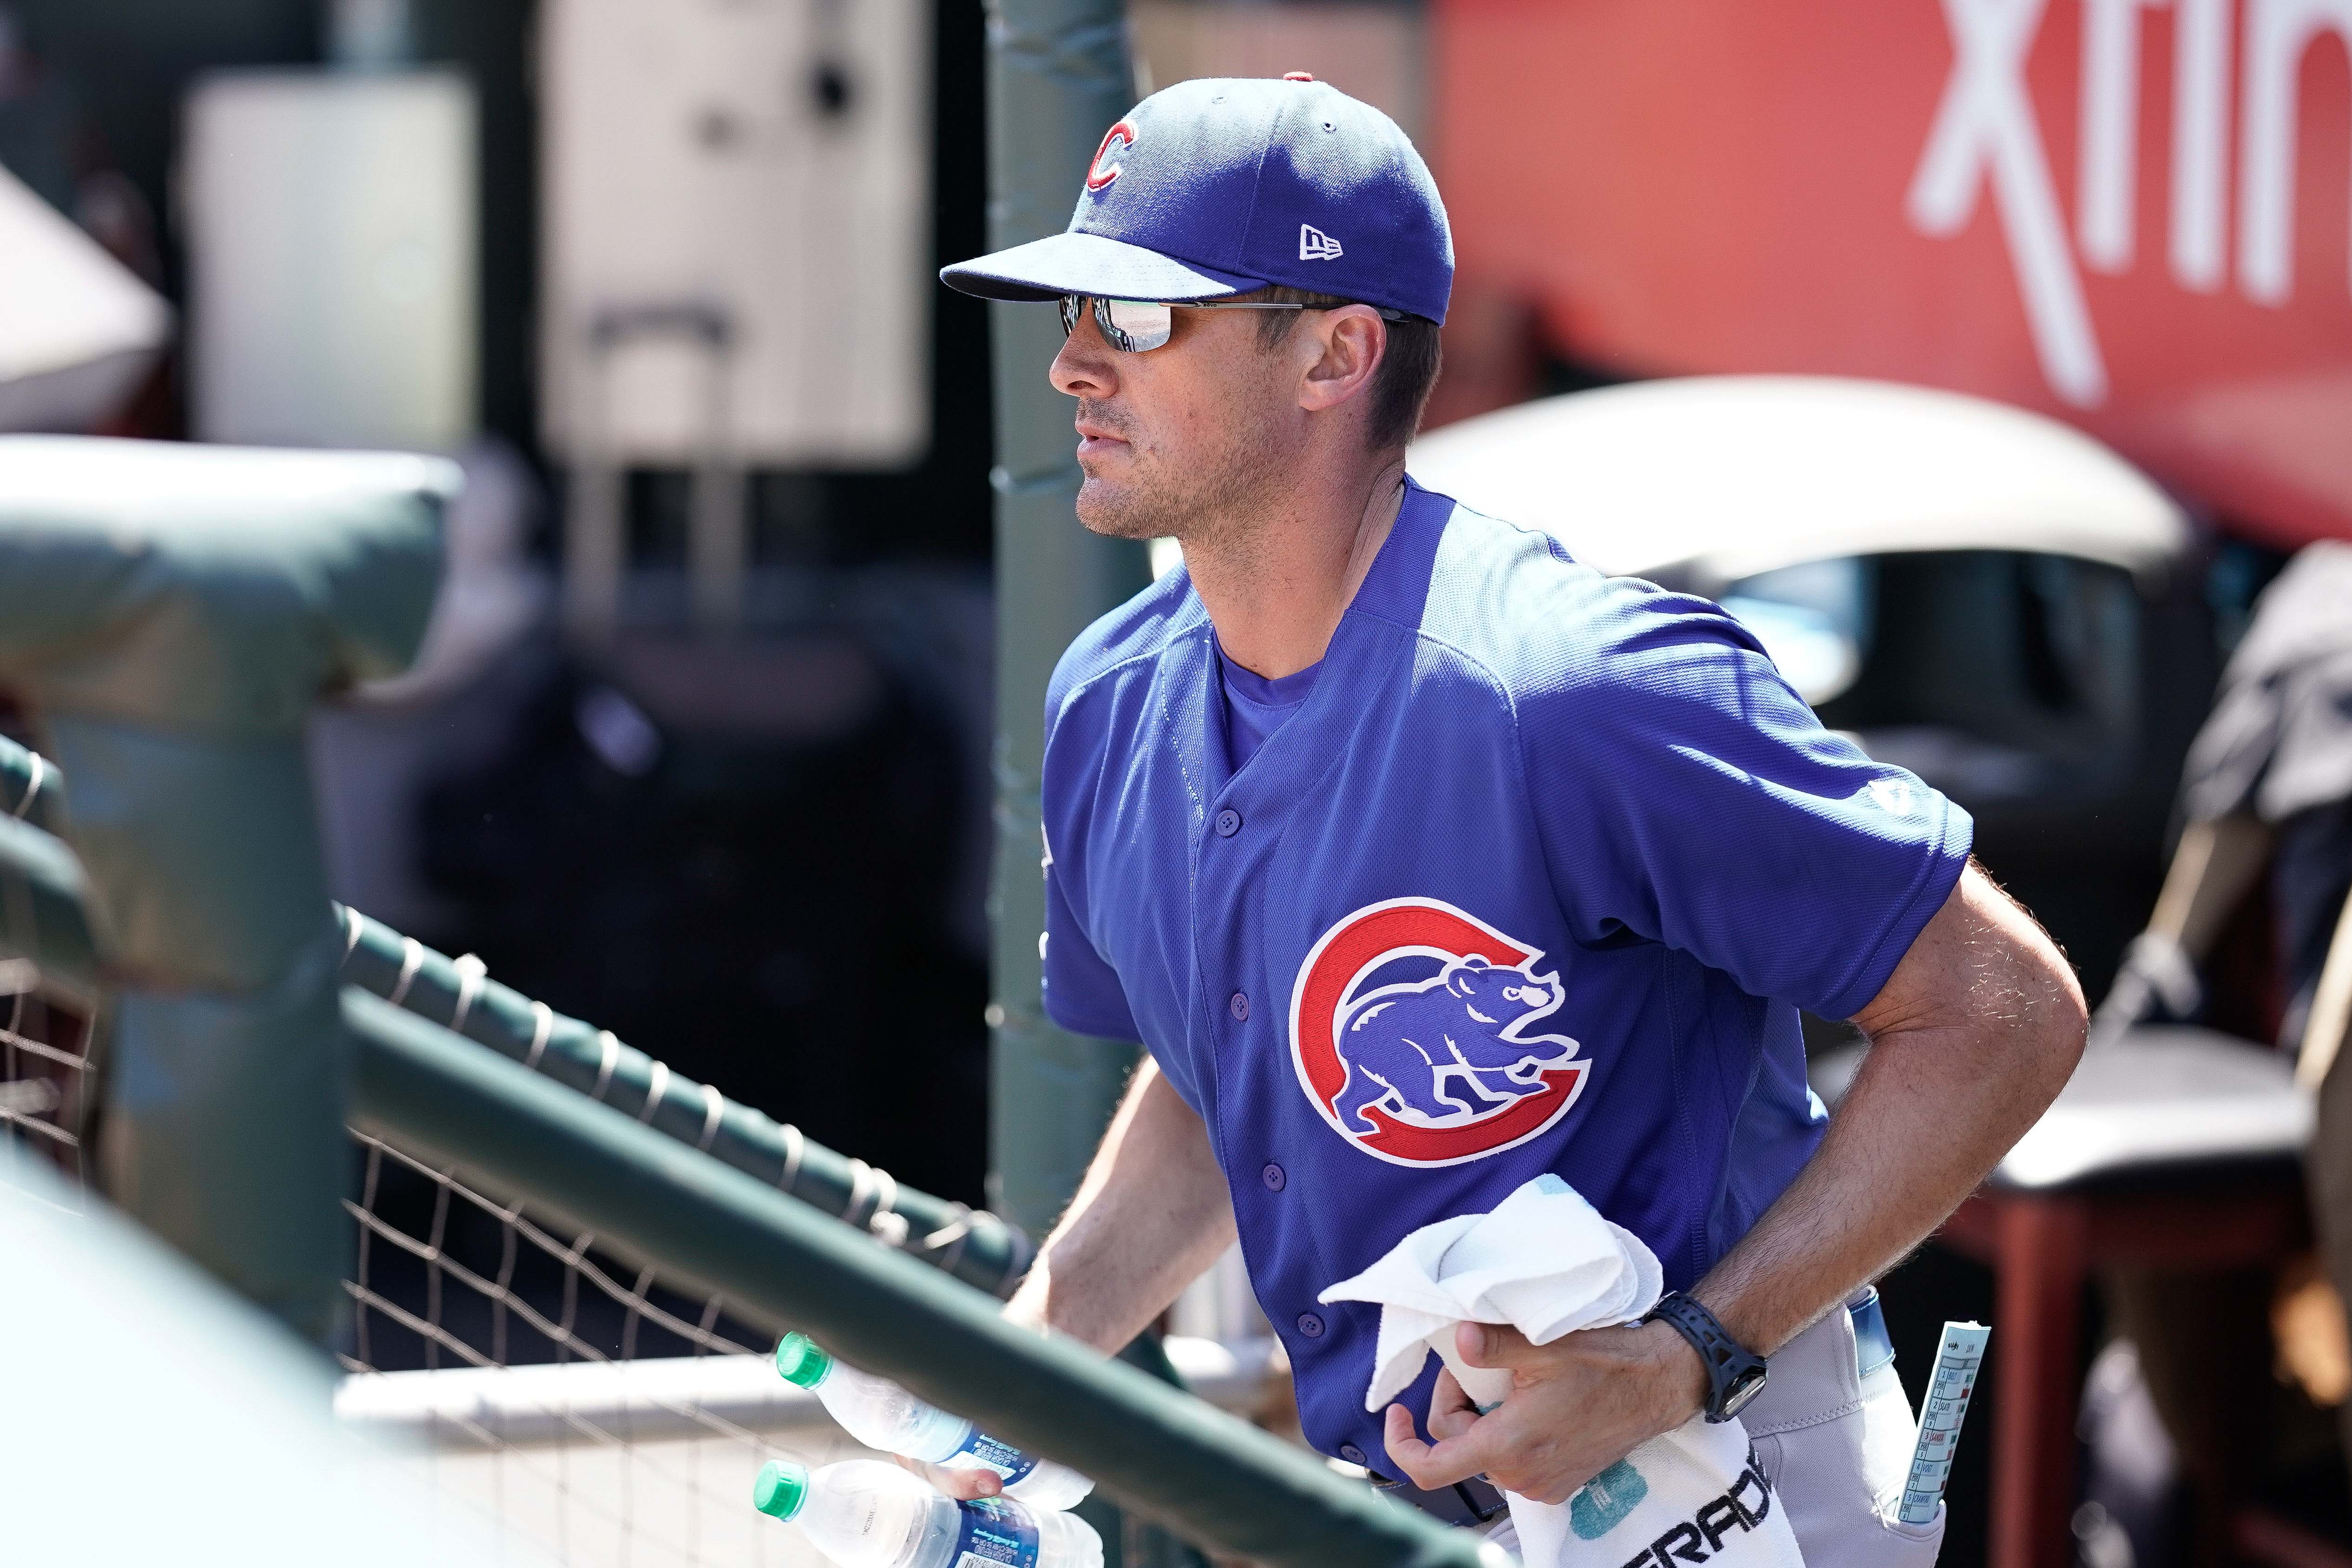 Cubs No Longer Anybody's COVID-19 Safety Role Model